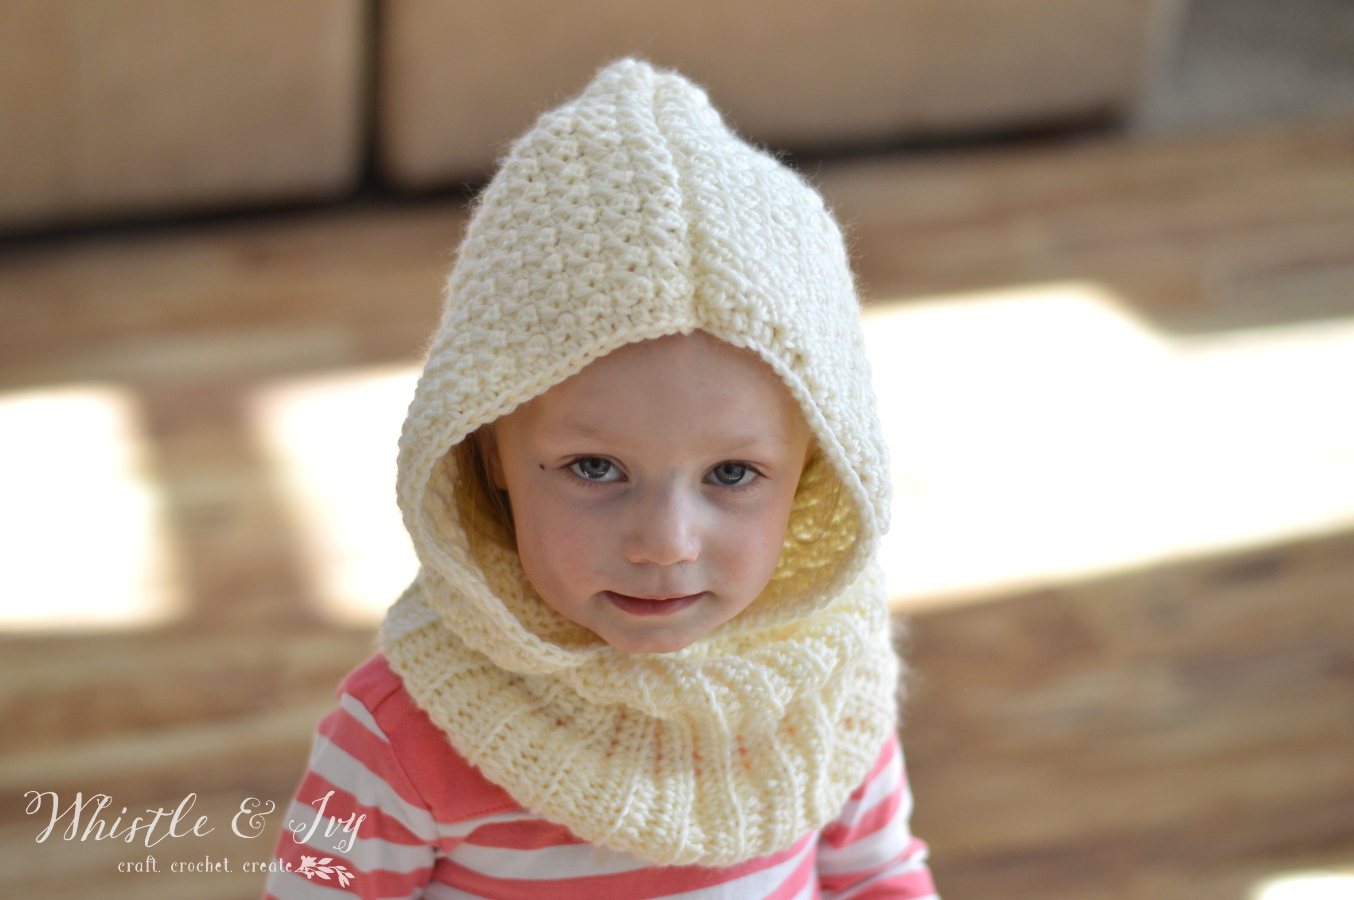 Free Crochet Pattern Toddler Hooded Cowl : Cozy Cute: Toddler Hooded Cowl Crochet Pattern - Stitch ...